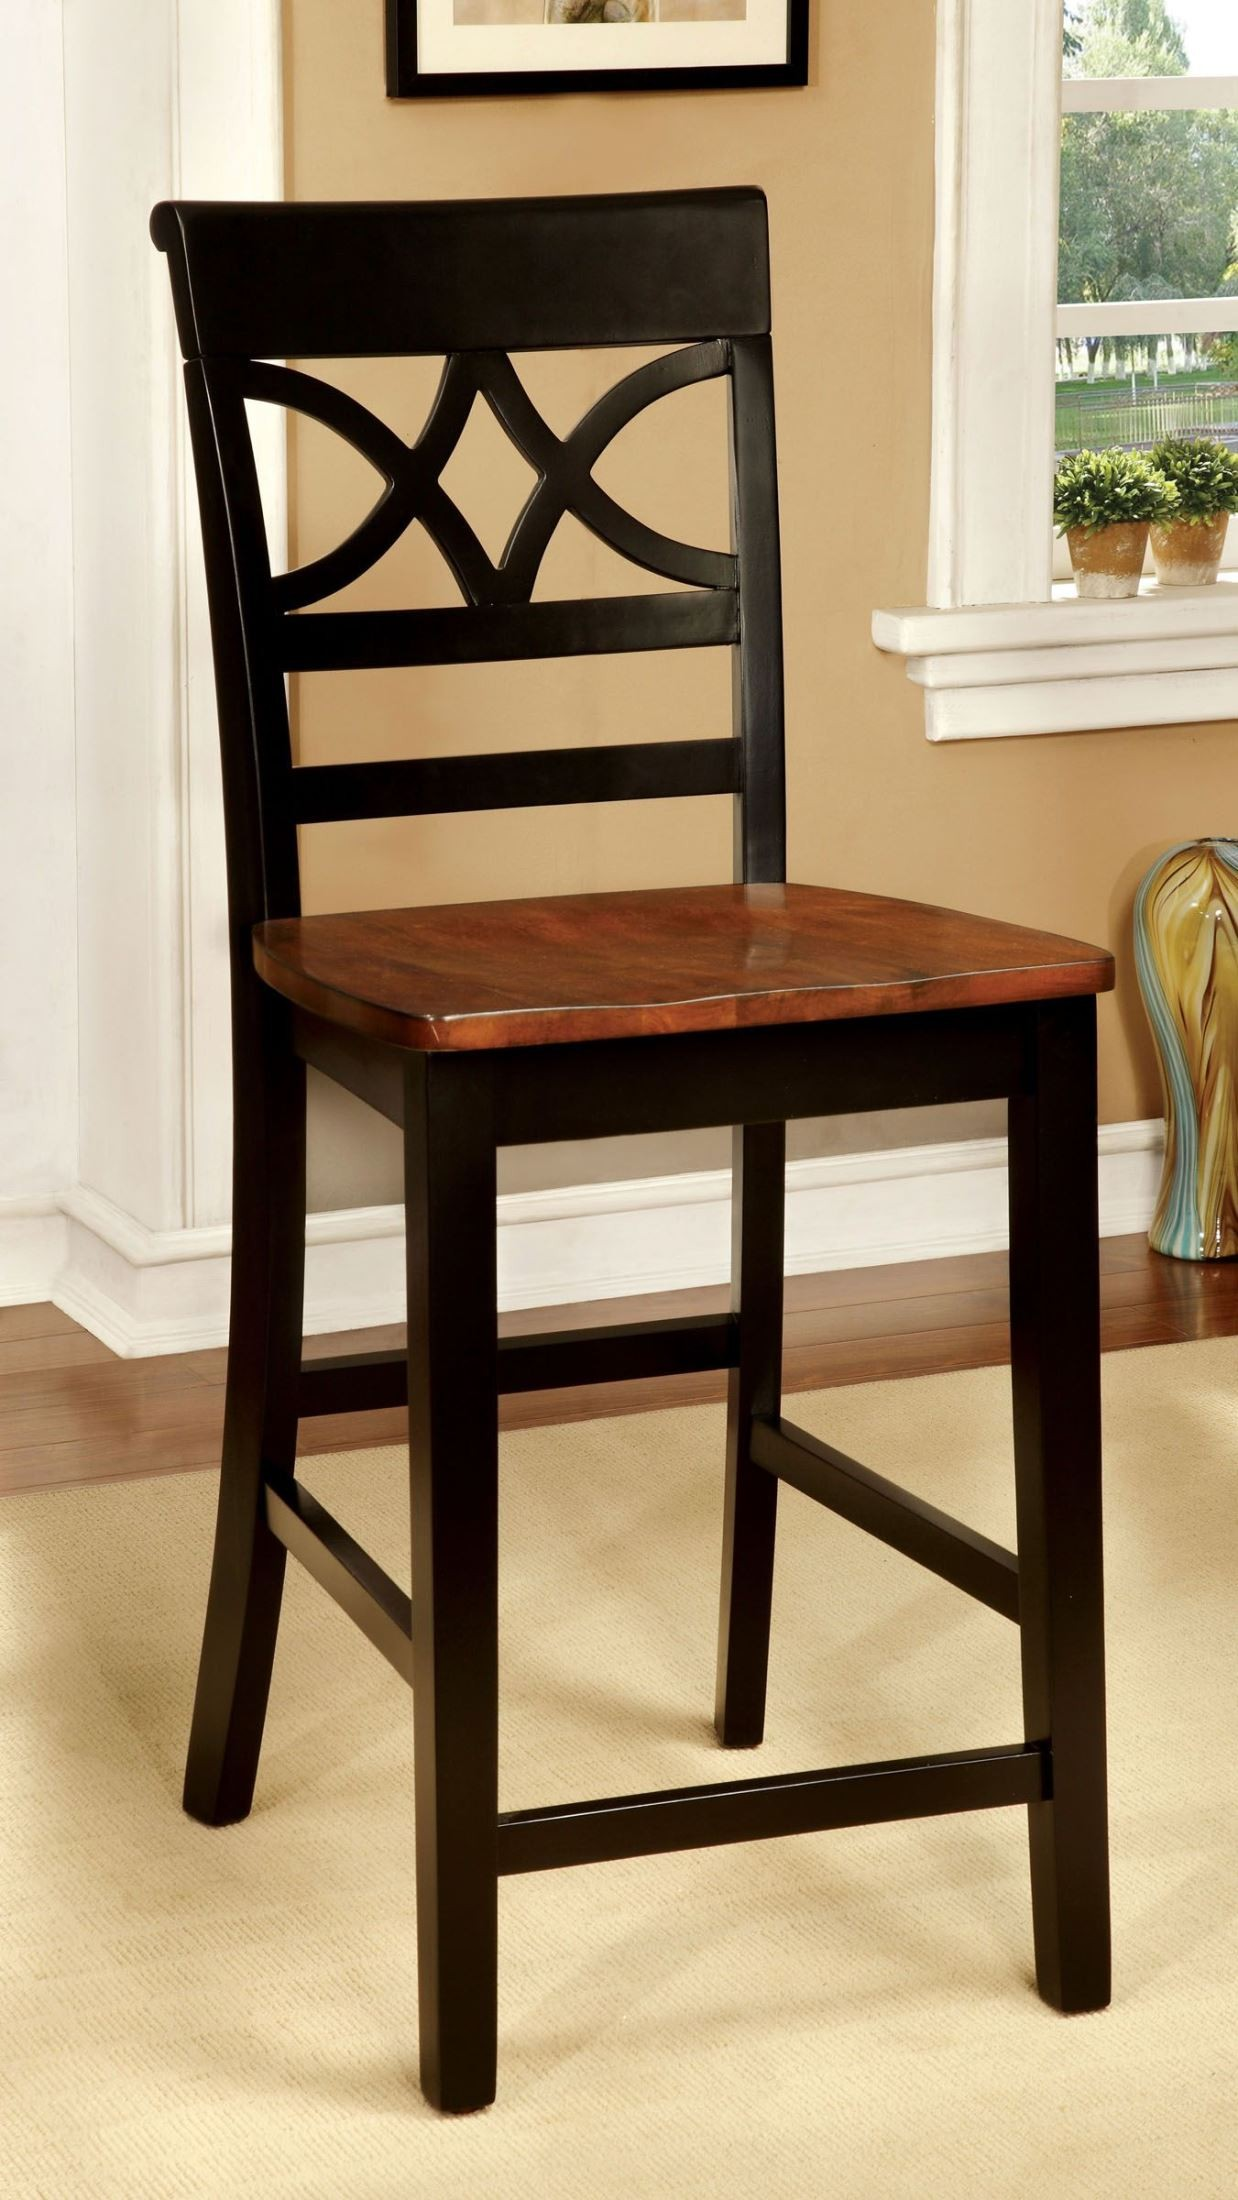 counter height chairs set of 2 ikea clear torrington ii black and cherry chair